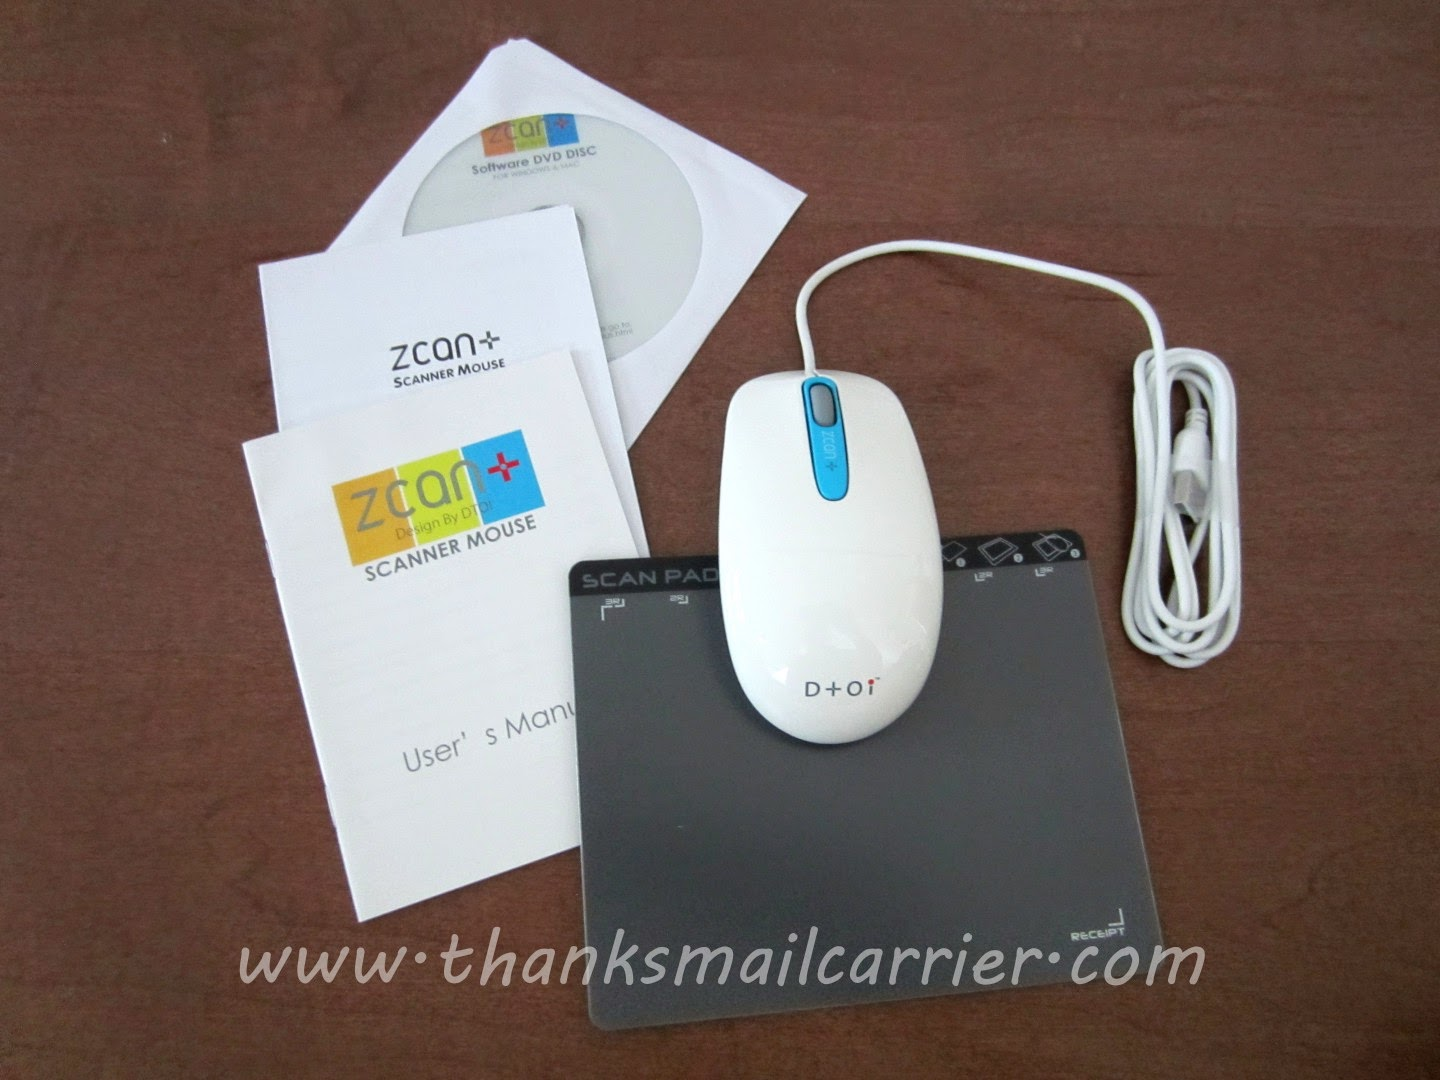 zcan+ scanner mouse review